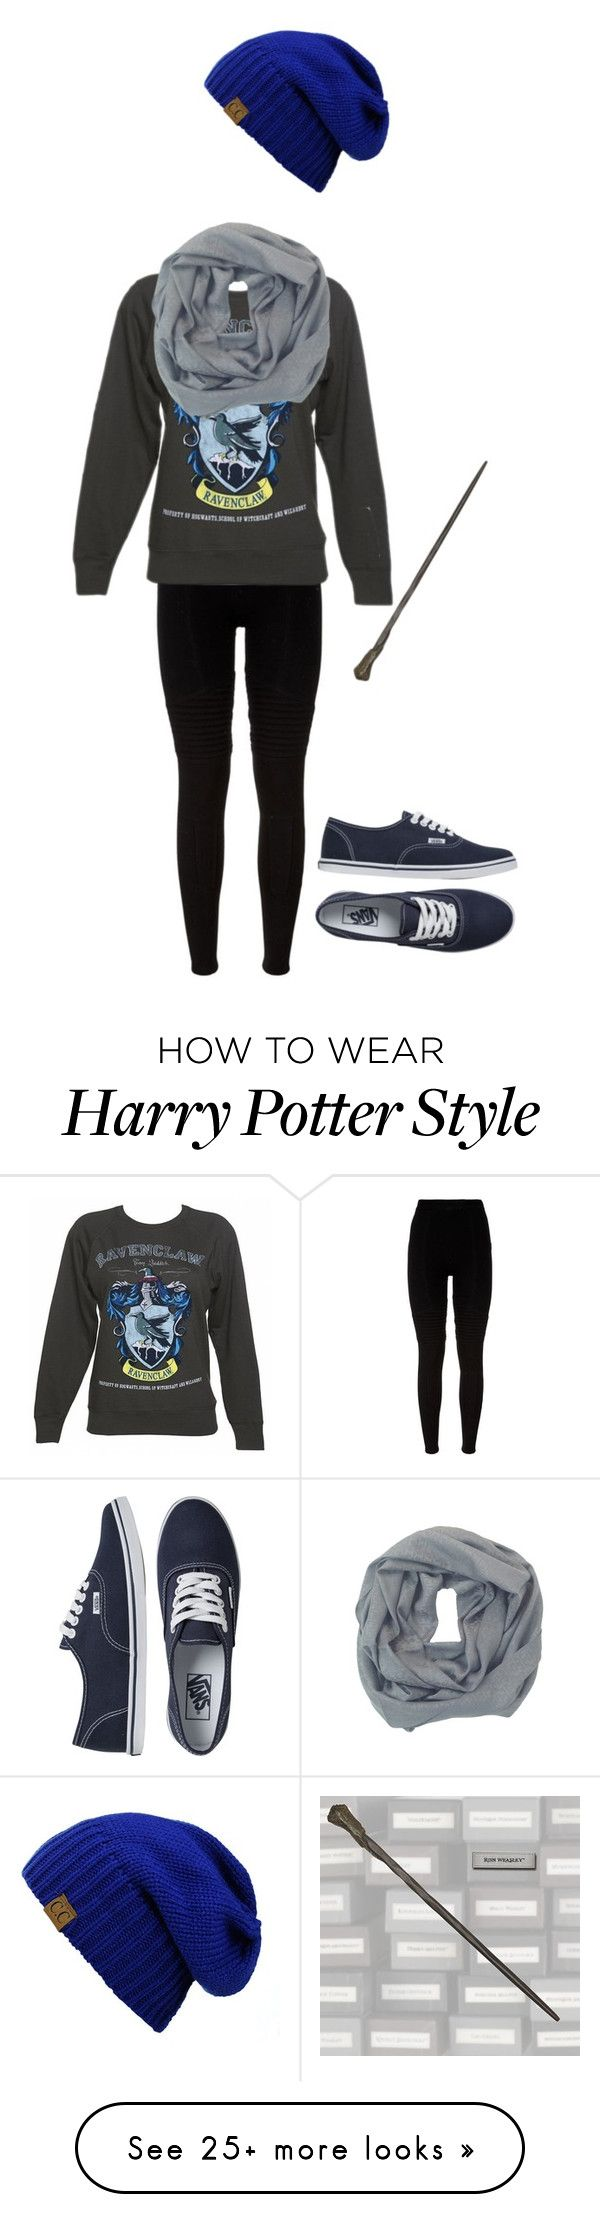 """Ravenclaw Quidditch Team"" by natalia-imendoza on Polyvore featuring Givenchy, Vans and Tory Burch"